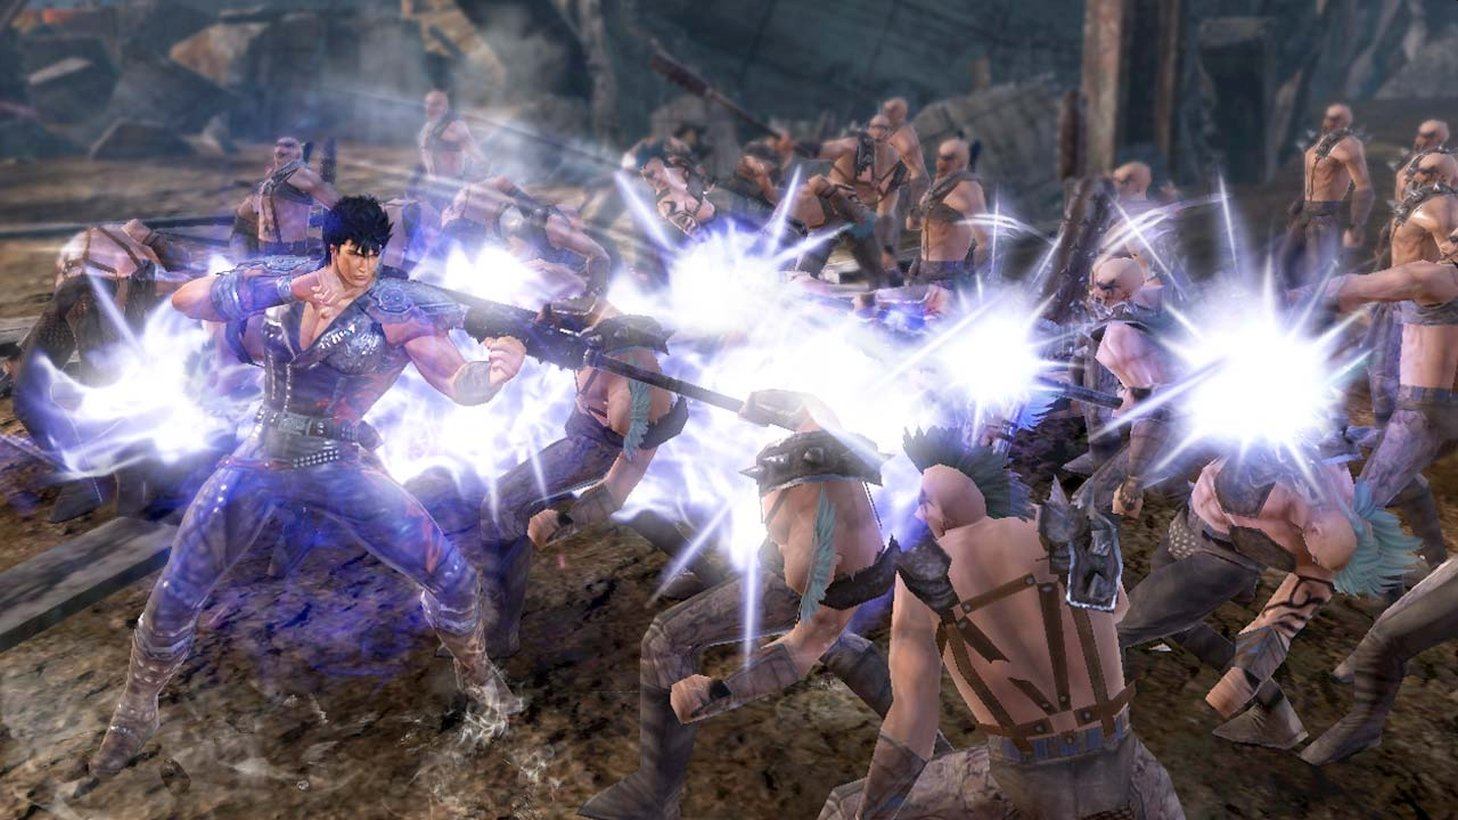 Koei Tecmo Announces New Fist Of The North Star Mobile Game Launches In Japan Later This Year